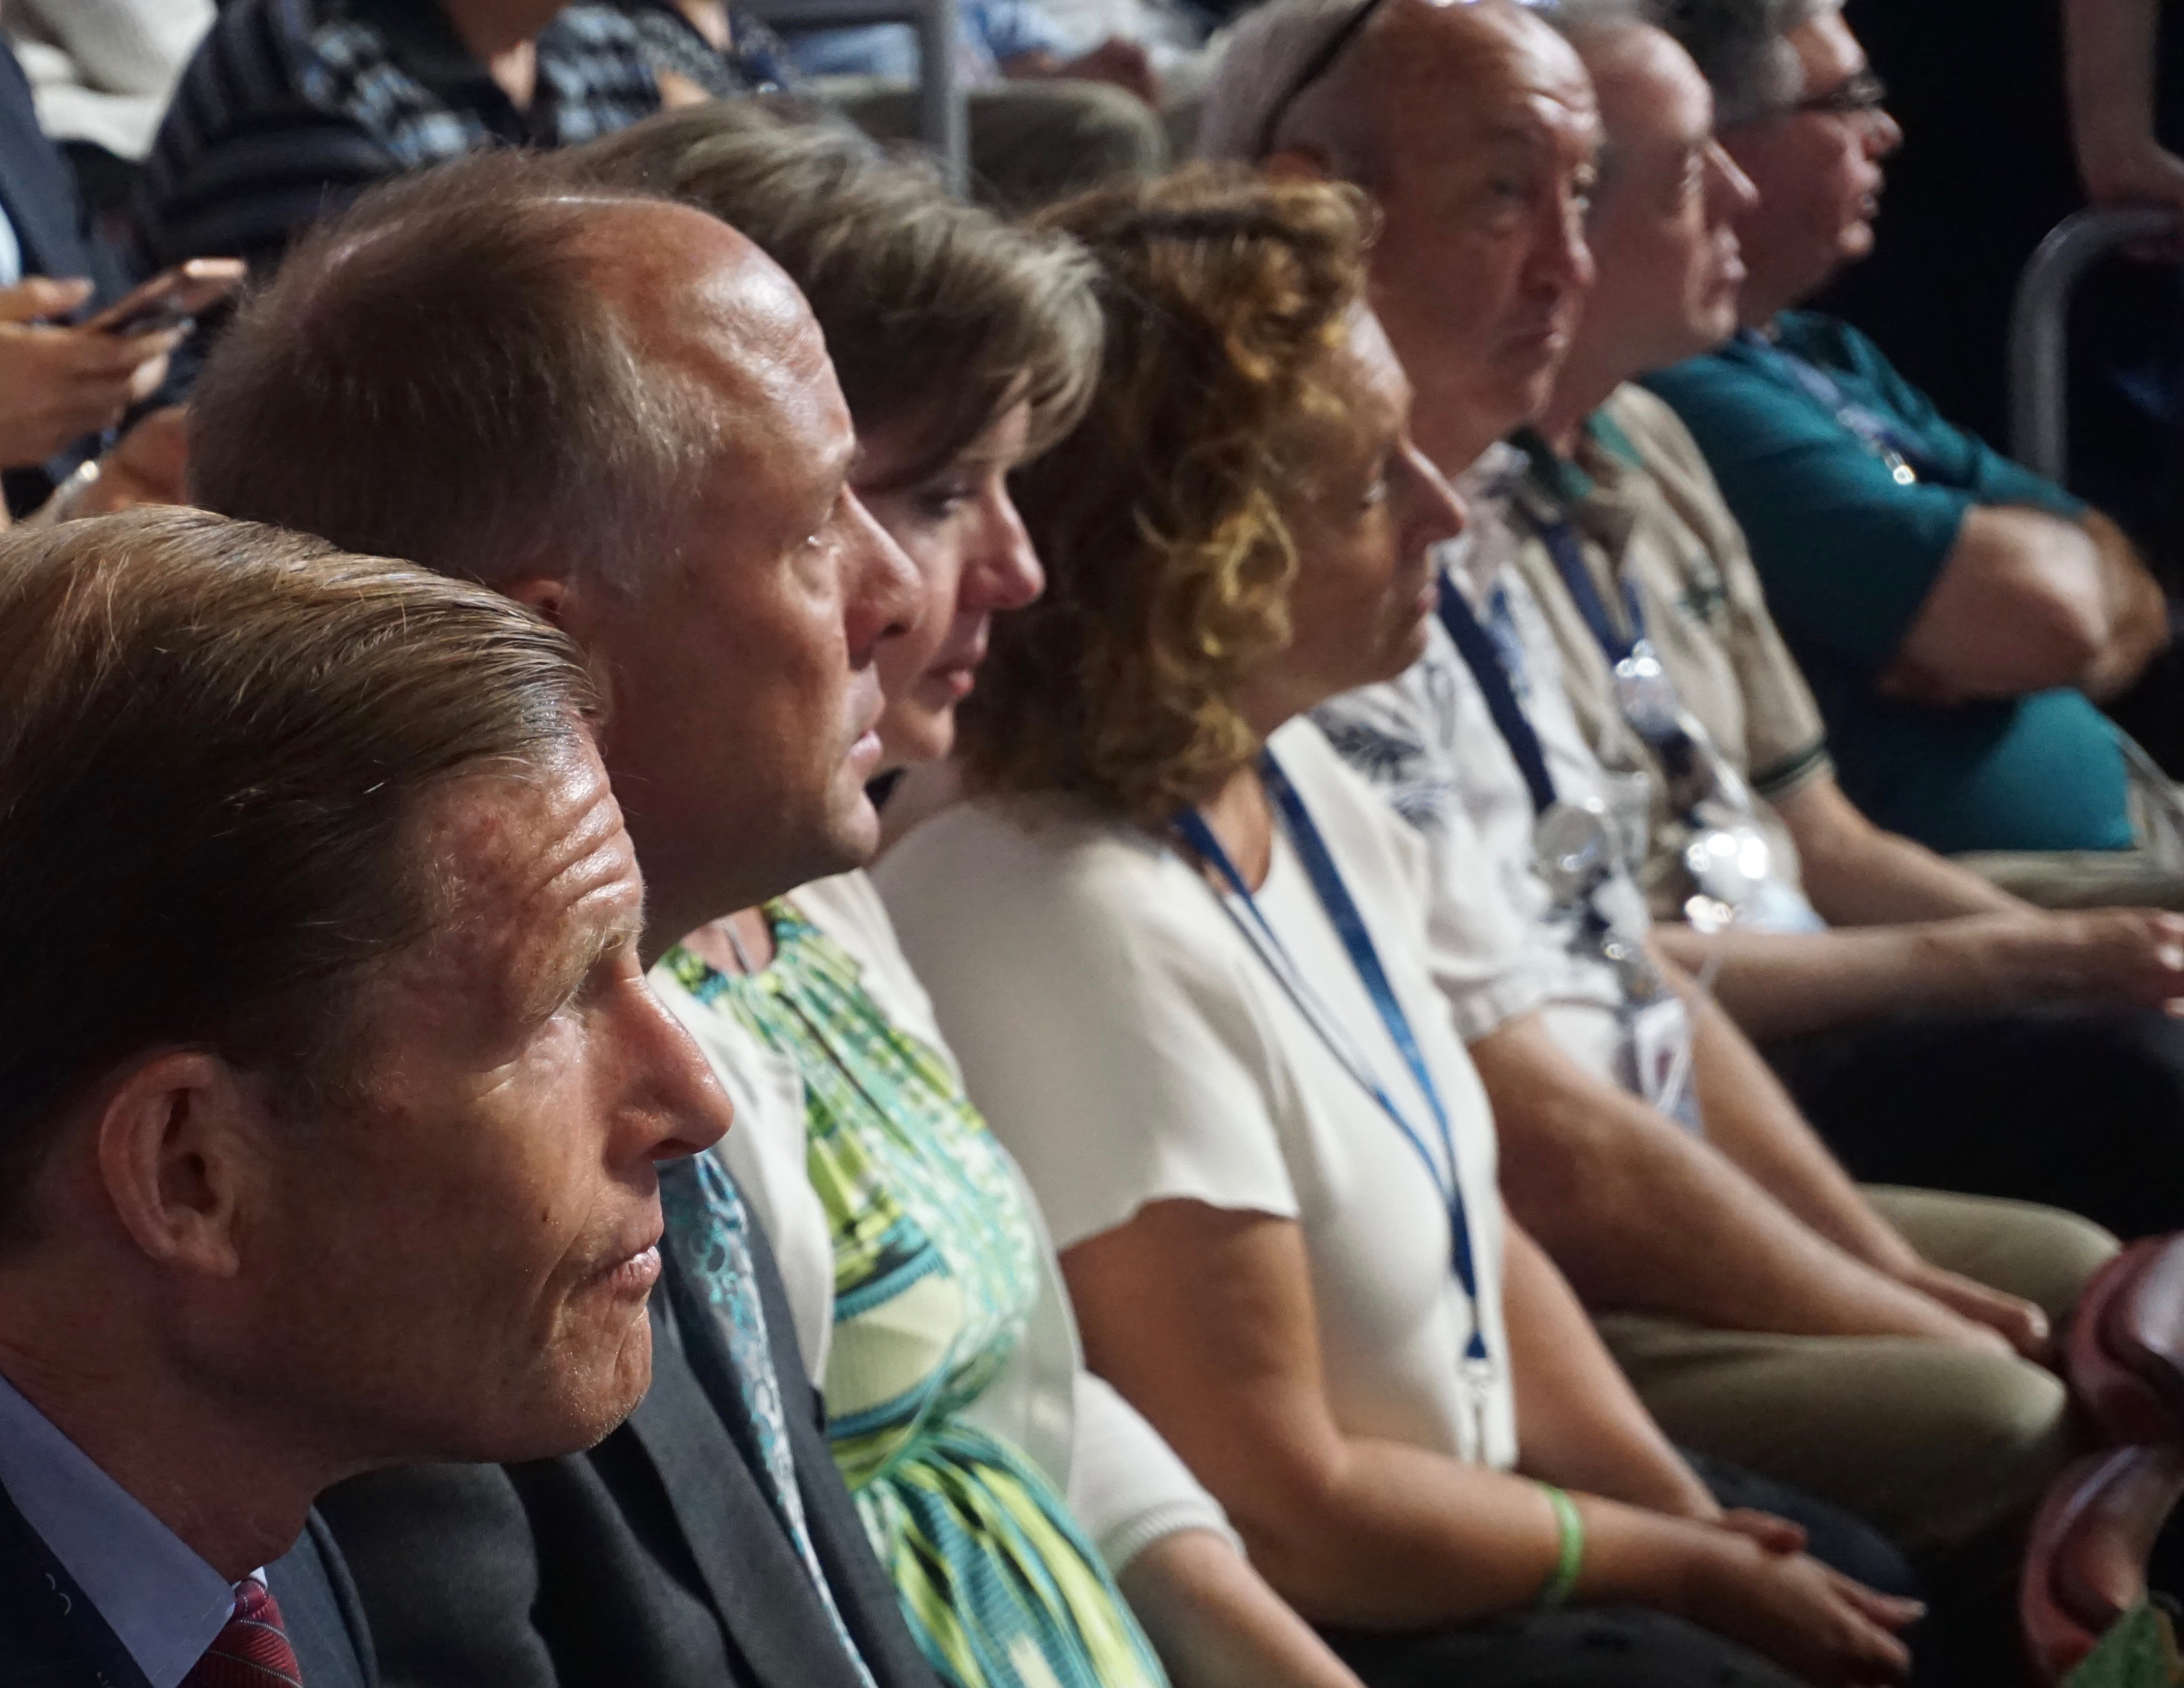 """Watching Sen. Chris Murphy's speech are, left to right, Sen. Richard Blumenthal; Mark and Jackie Barden, whose 7-year-old son Daniel was killed at Sandy Hook; and documentarian Kim Snyder, whose film """"Newtown"""" on the Sandy Hook massacre was screened in Philadelphia Wednesday."""